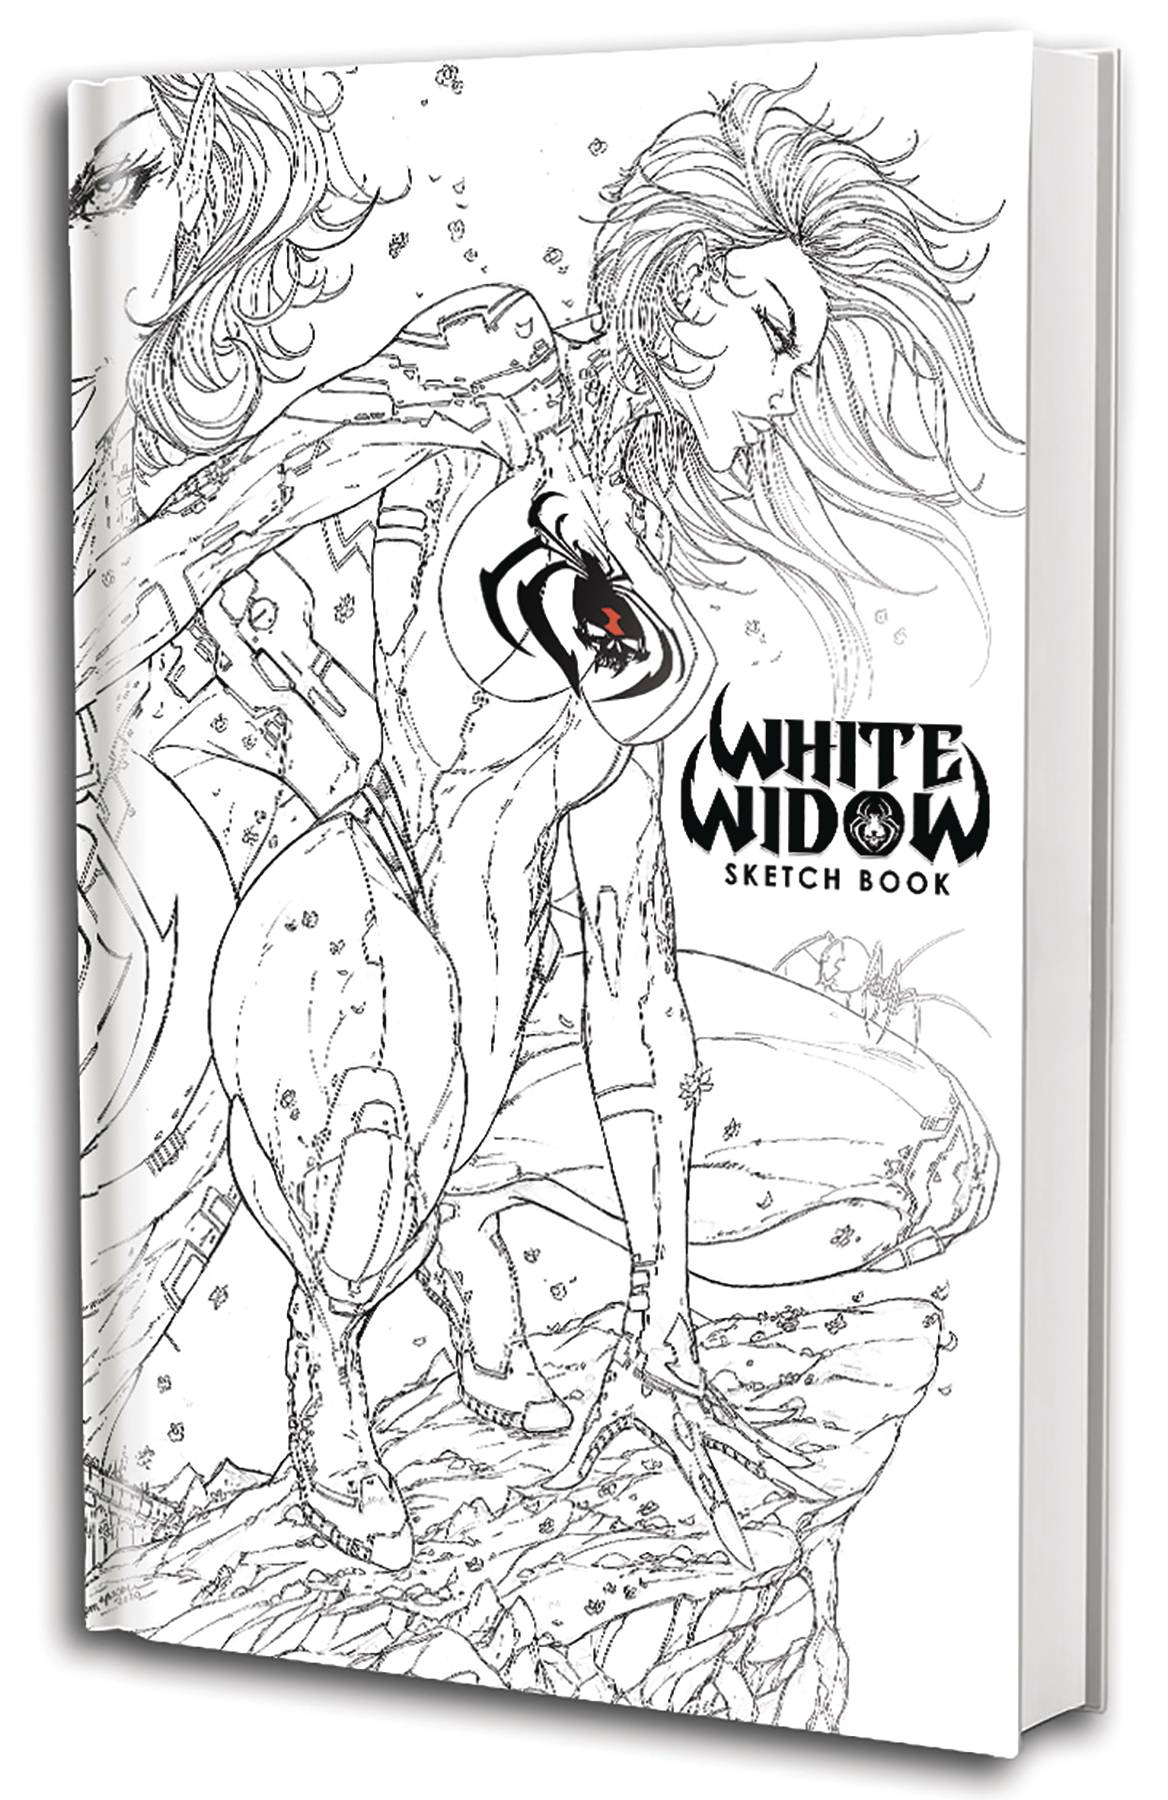 WHITE WIDOW SKETCH BOOK TP 01